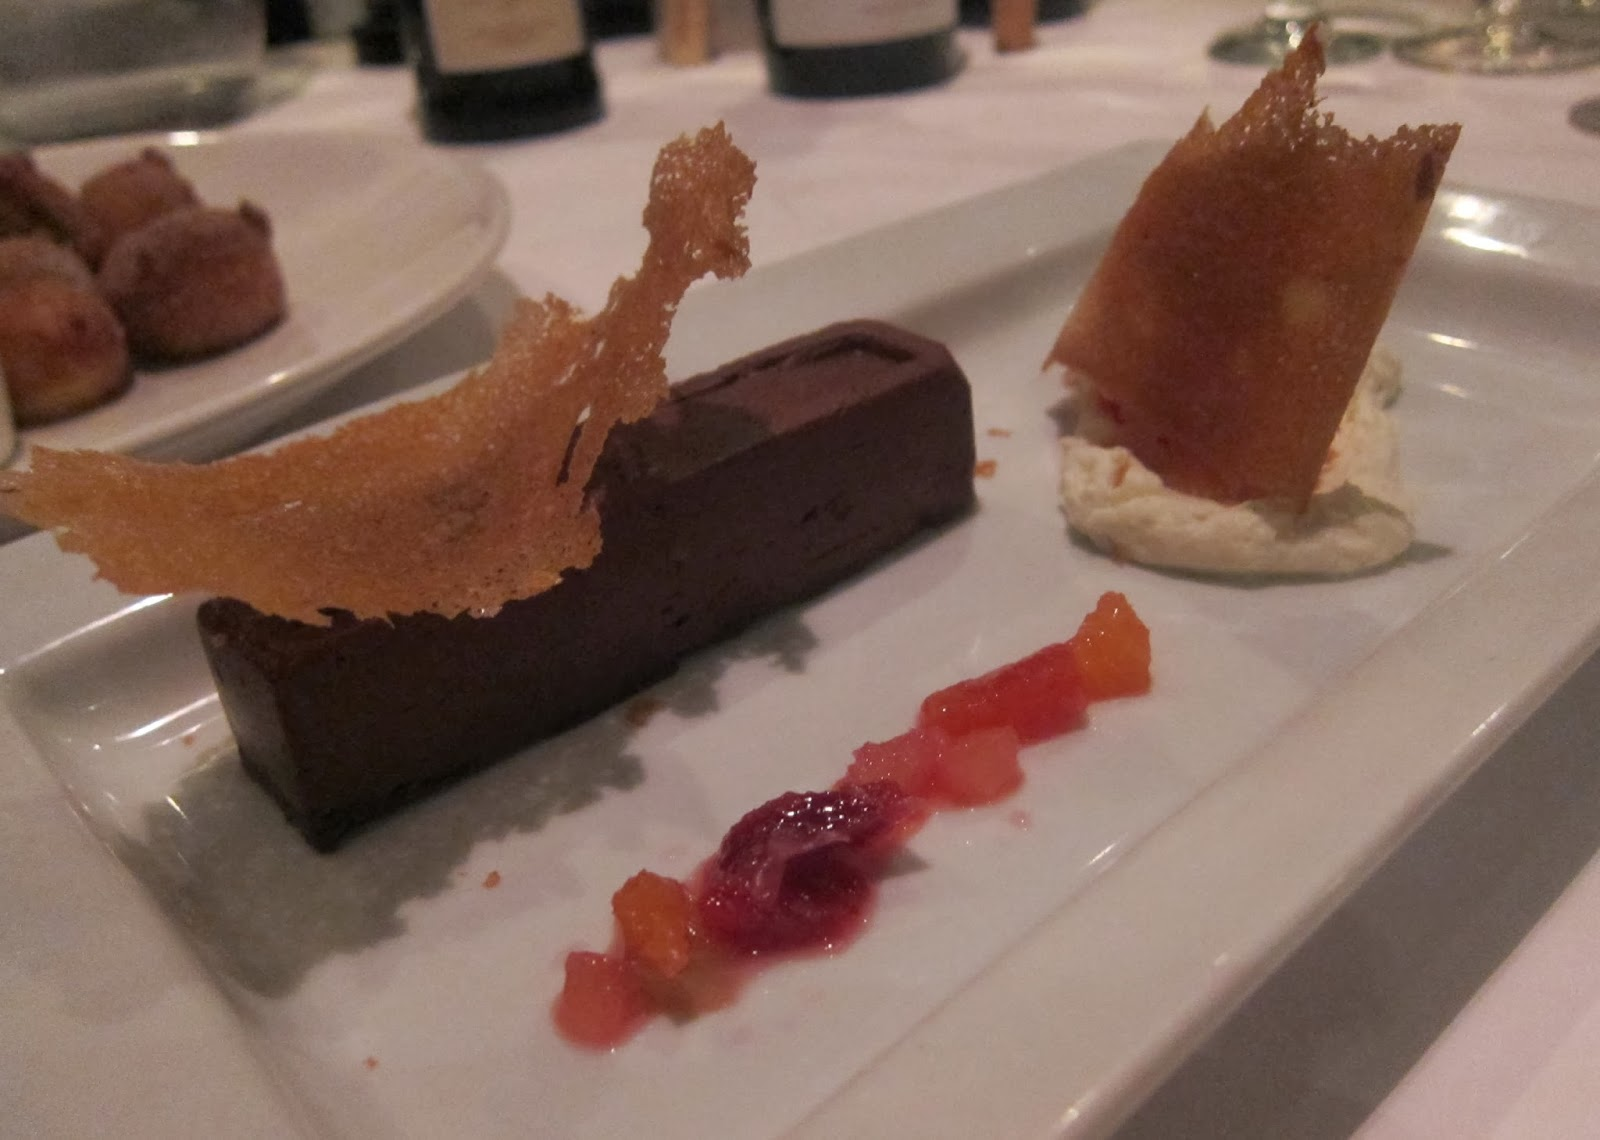 Chocolate Ganache a L'Orange at FISH Restaurant in Marlborough, MA | The Economical Eater